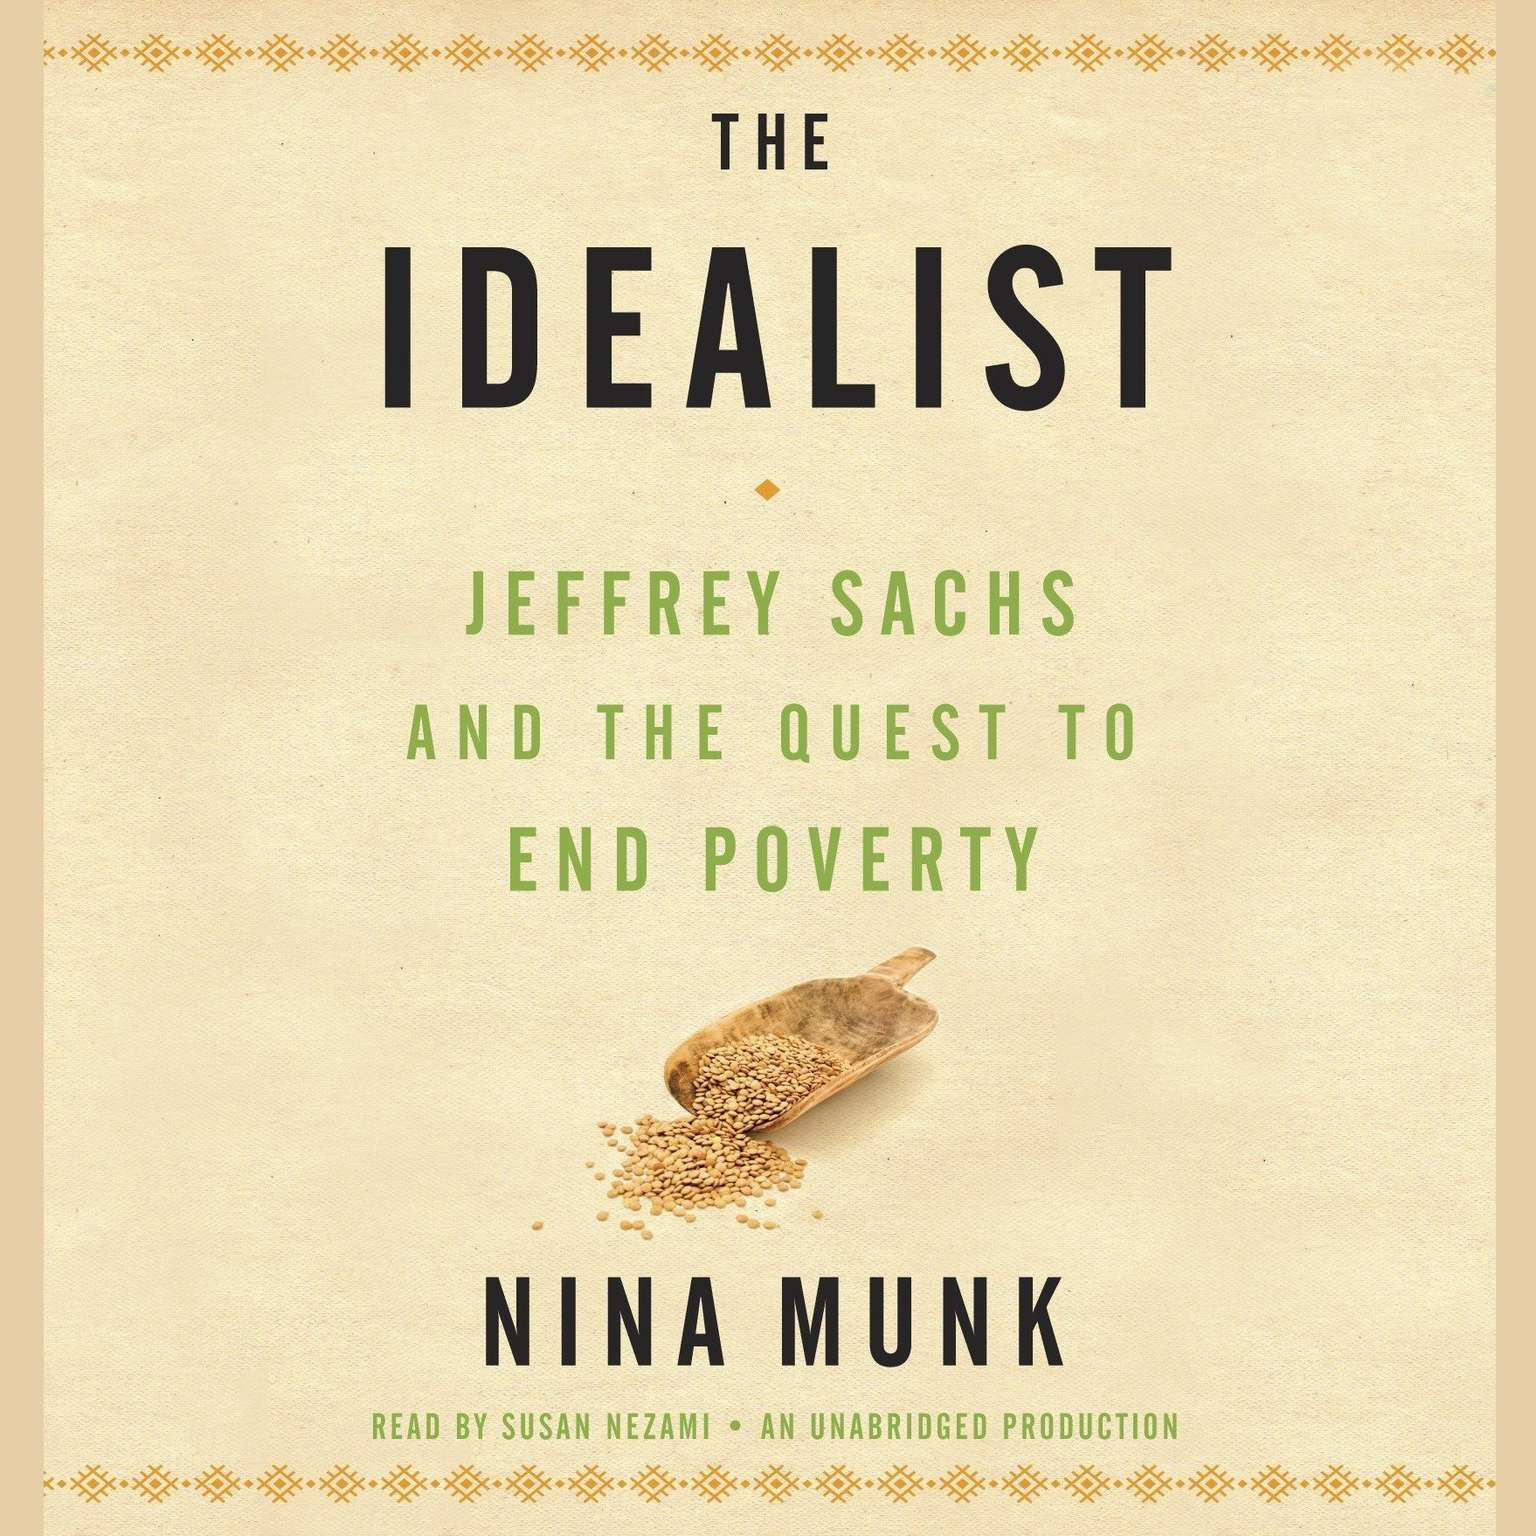 Printable The Idealist: Jeffrey Sachs and the Quest to End Poverty Audiobook Cover Art